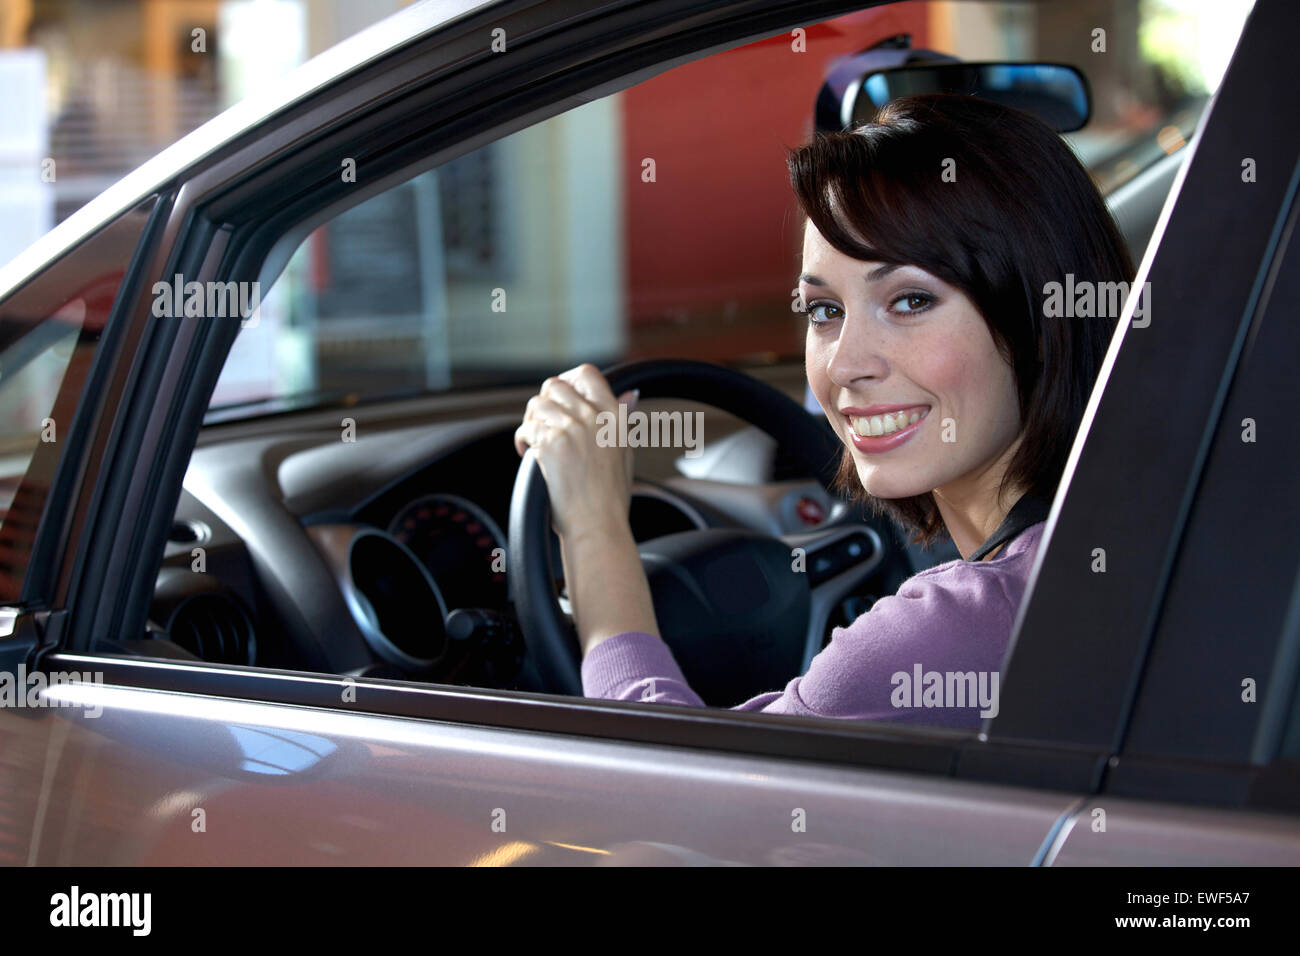 Portrait of young woman sitting in driver's seat at car dealership - Stock Image